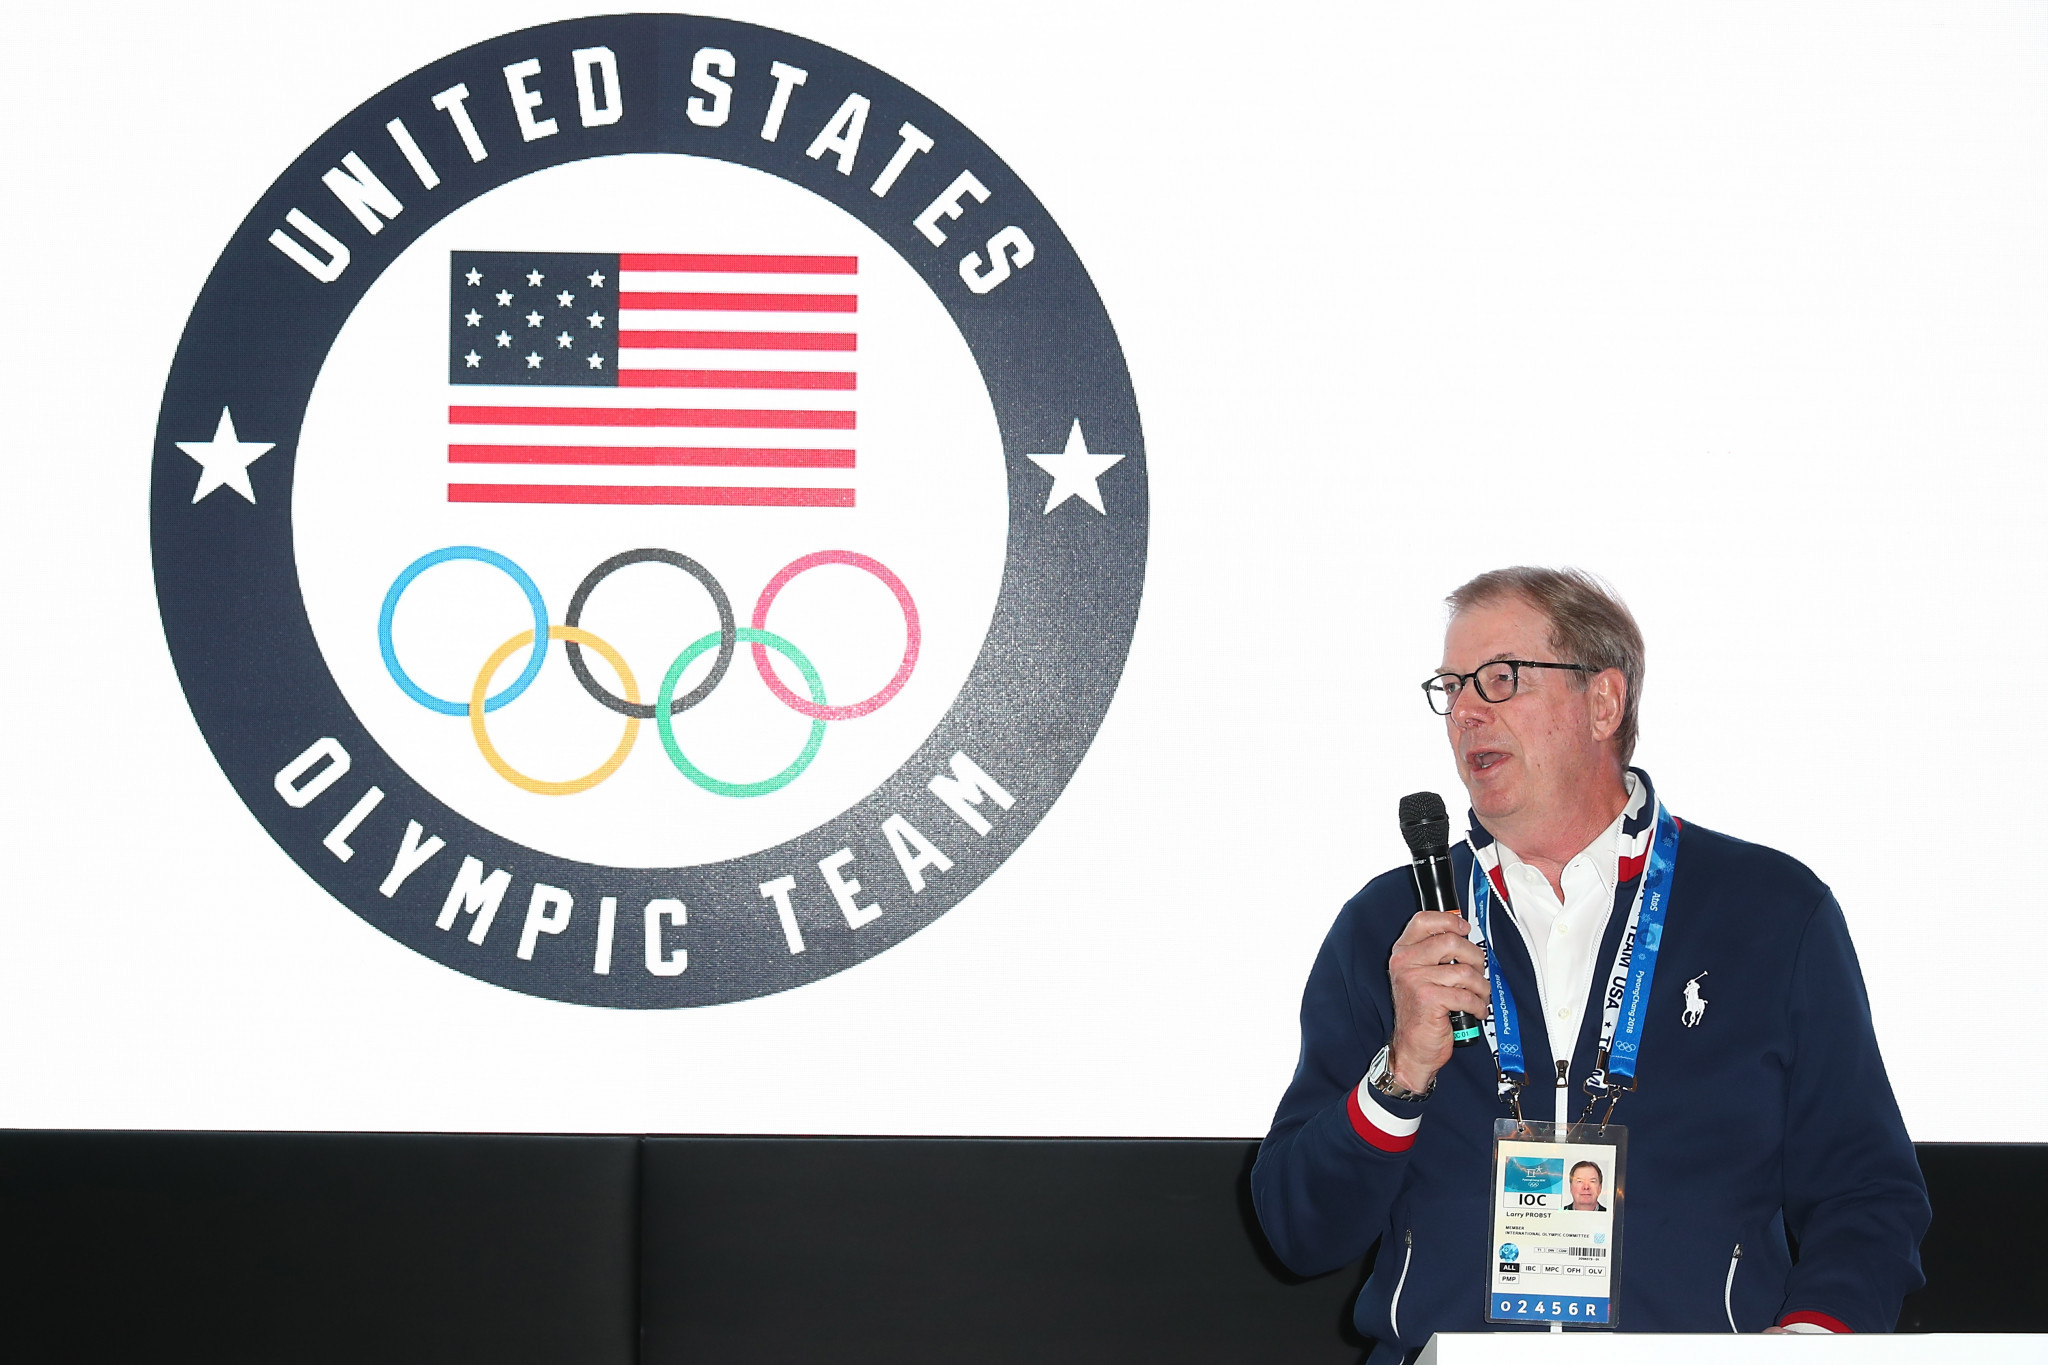 USOC close to concluding search for new chief executive